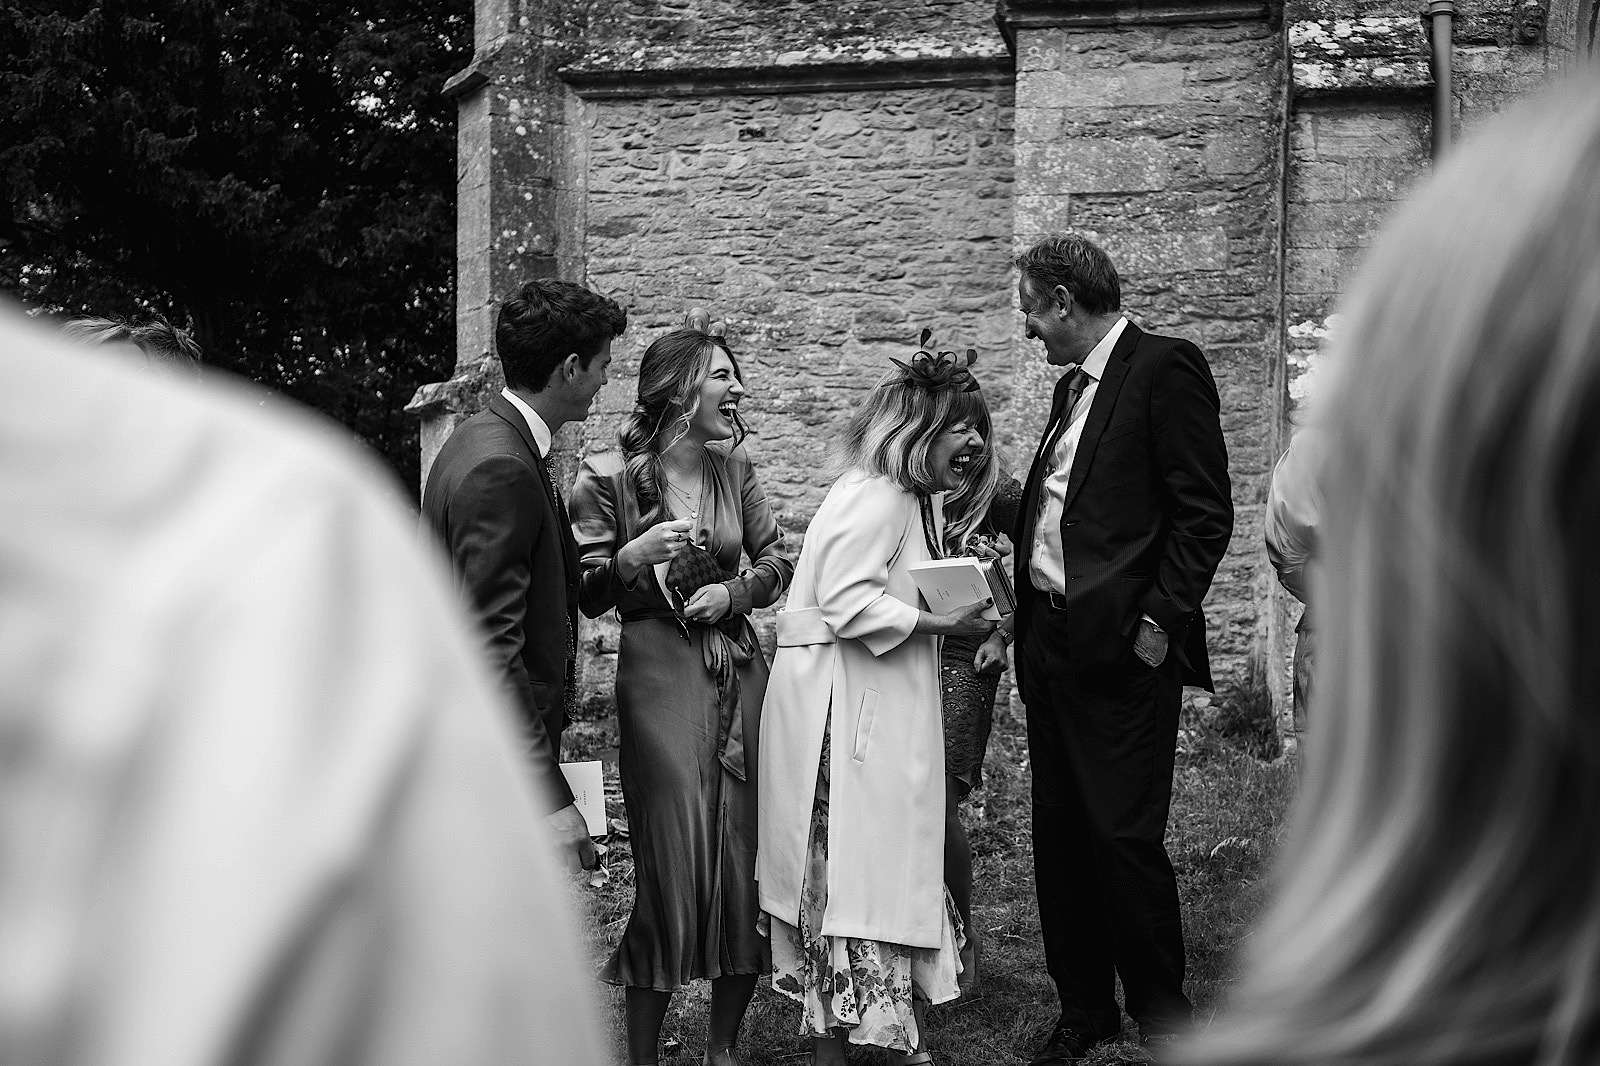 Documentary wedding photographer capturing a moment of guests laughing at the church